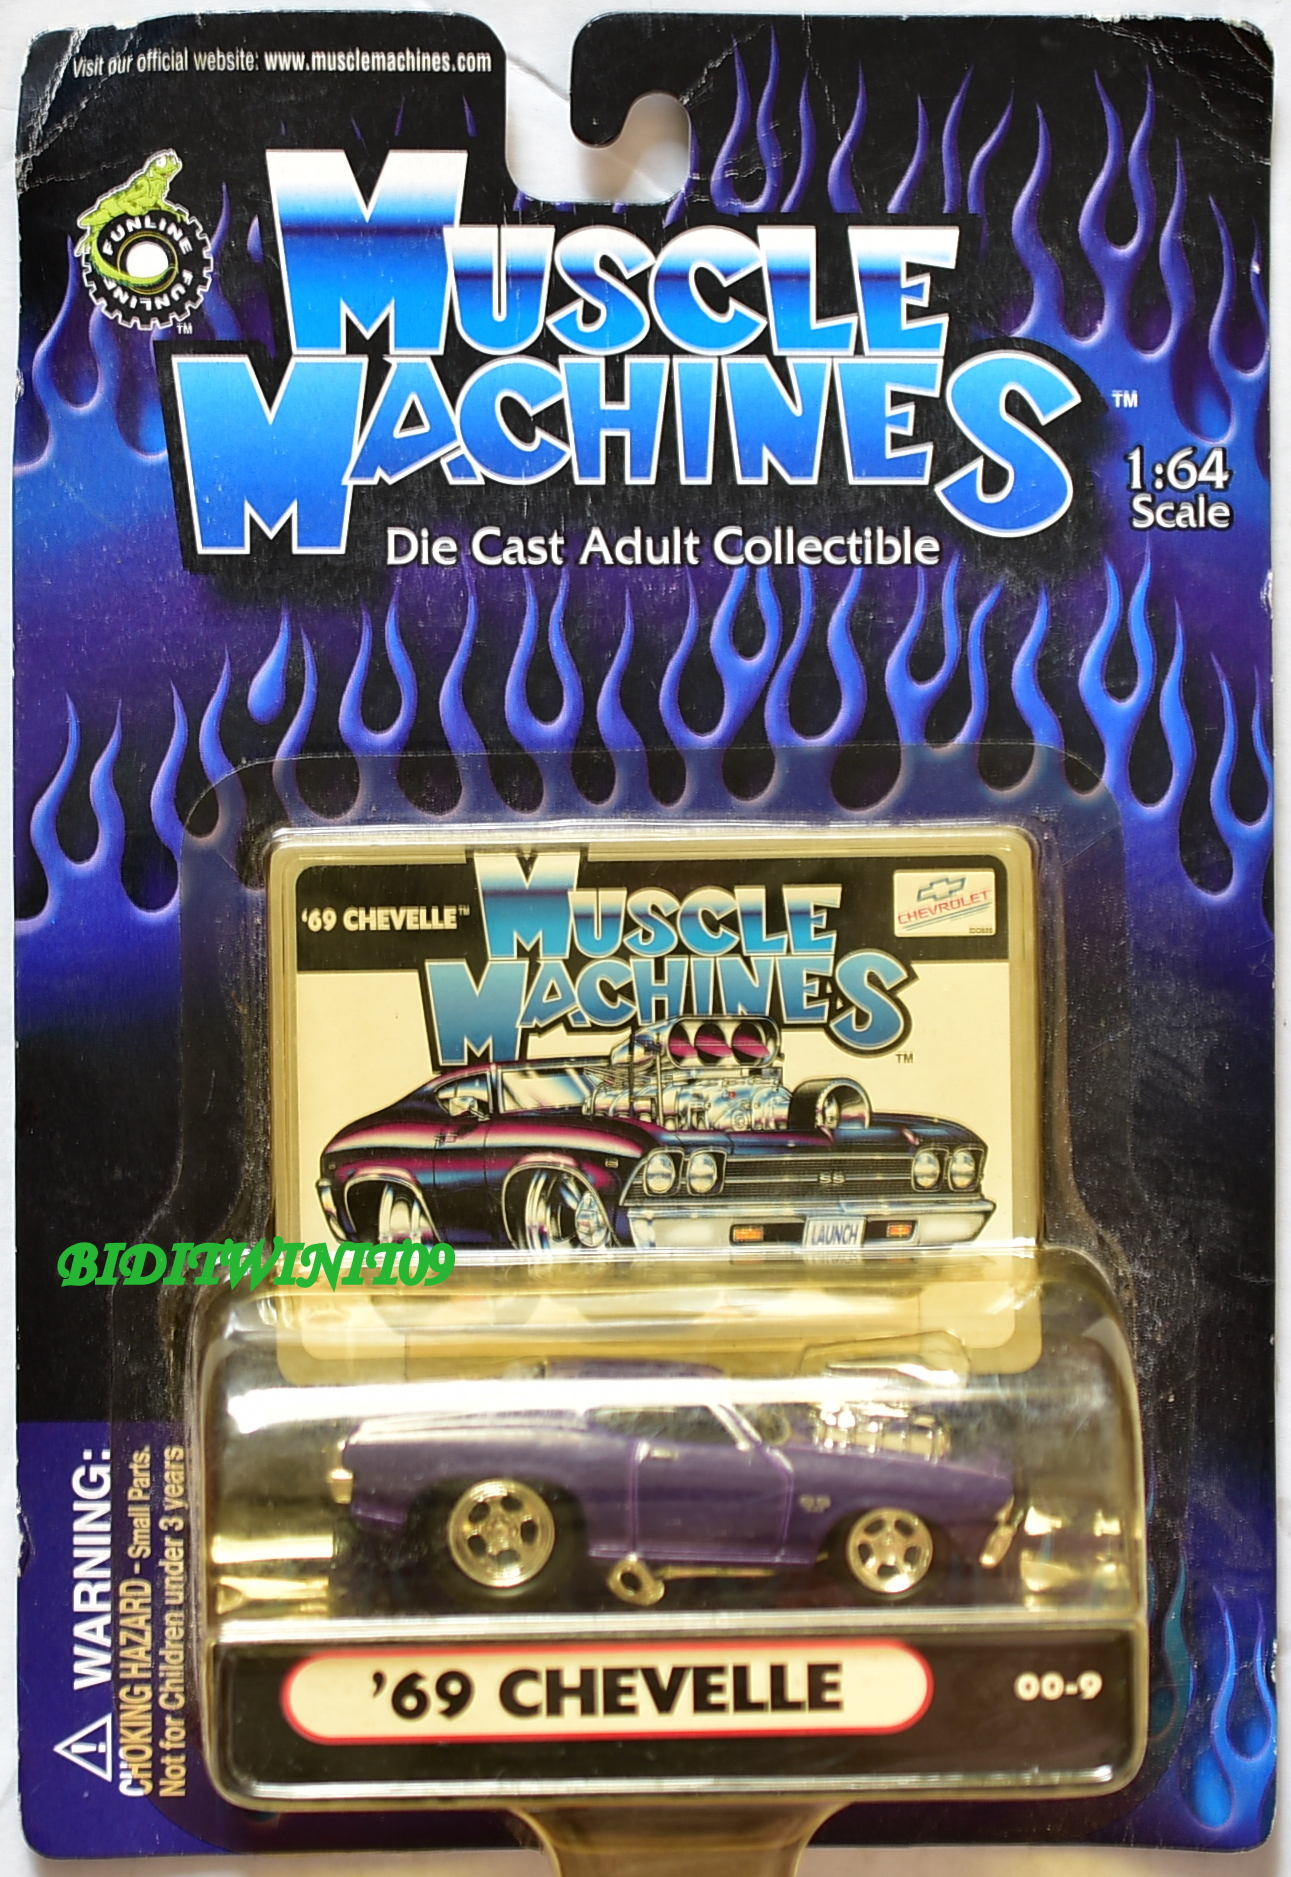 MUSCLE MACHINES '69 CHEVELLE 00-9 1:64 SCALE E+